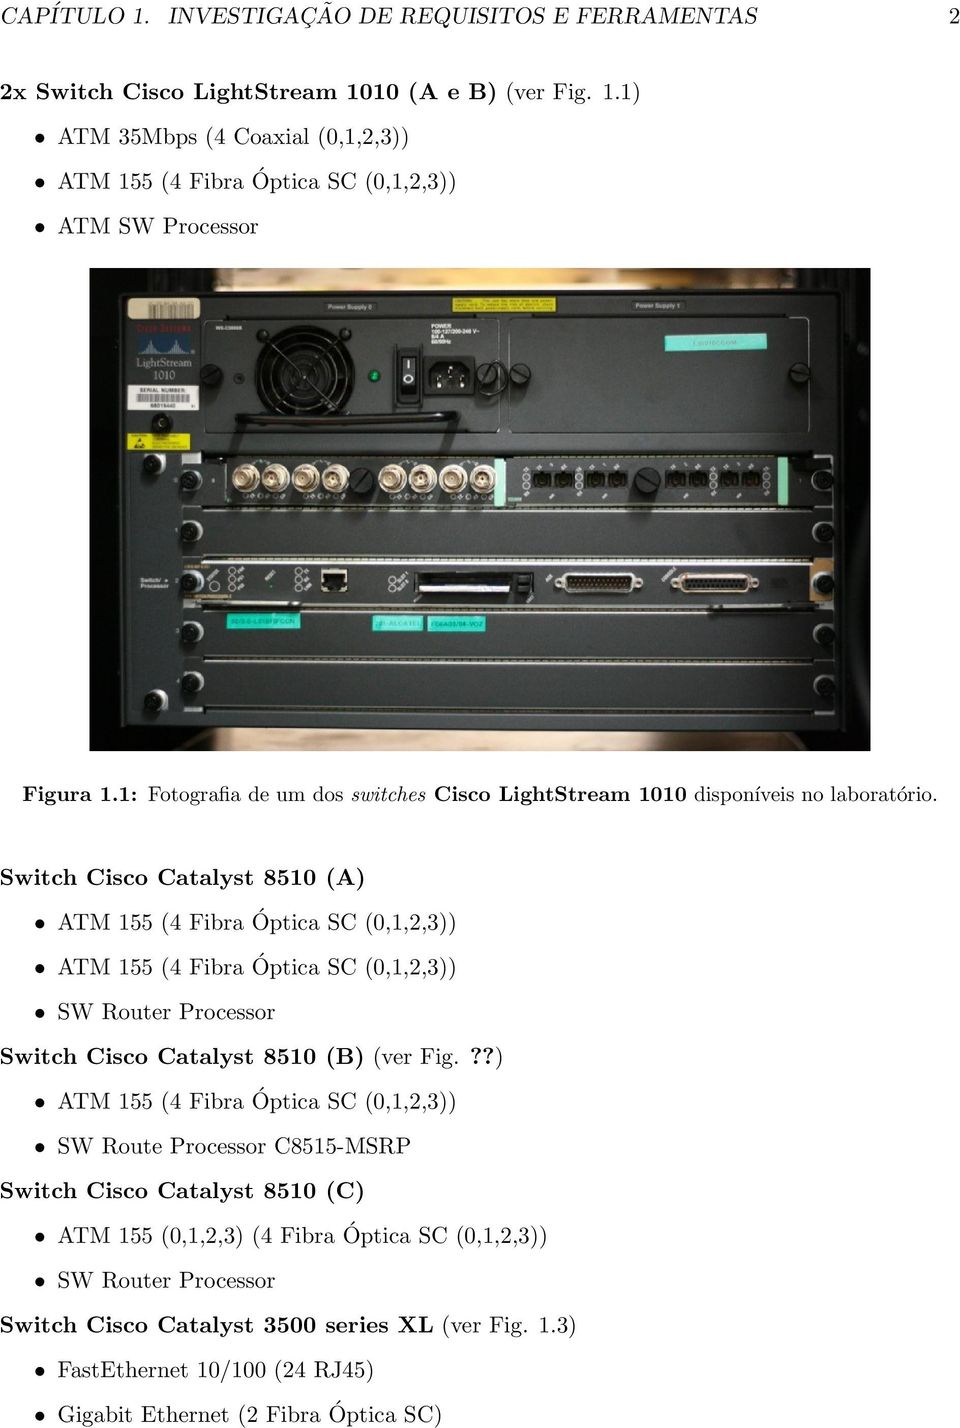 Switch Cisco Catalyst 8510 (A) ATM 155 (4 Fibra Óptica SC (0,1,2,3)) ATM 155 (4 Fibra Óptica SC (0,1,2,3)) SW Router Processor Switch Cisco Catalyst 8510 (B) (ver Fig.